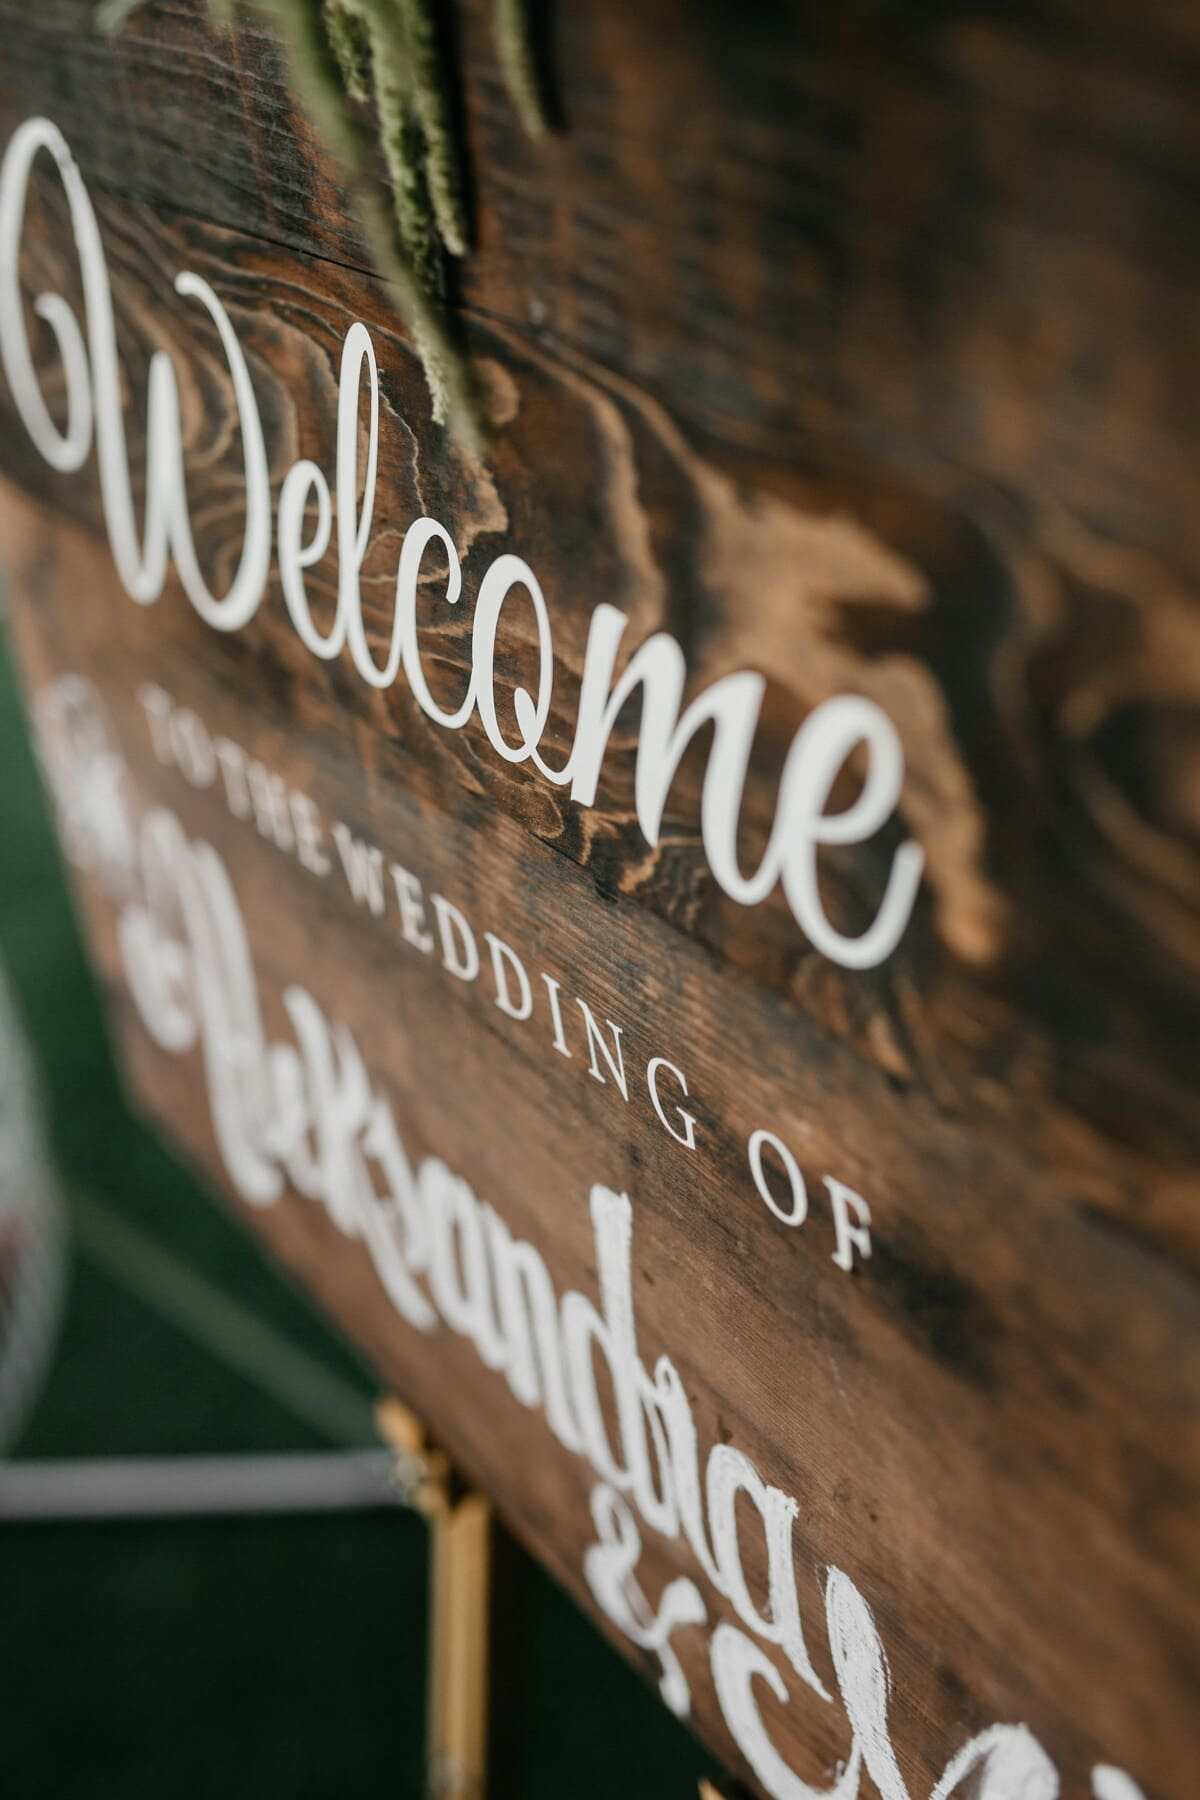 sign, welcome, wooden, text, vintage, design, romantic, wood, retro, old